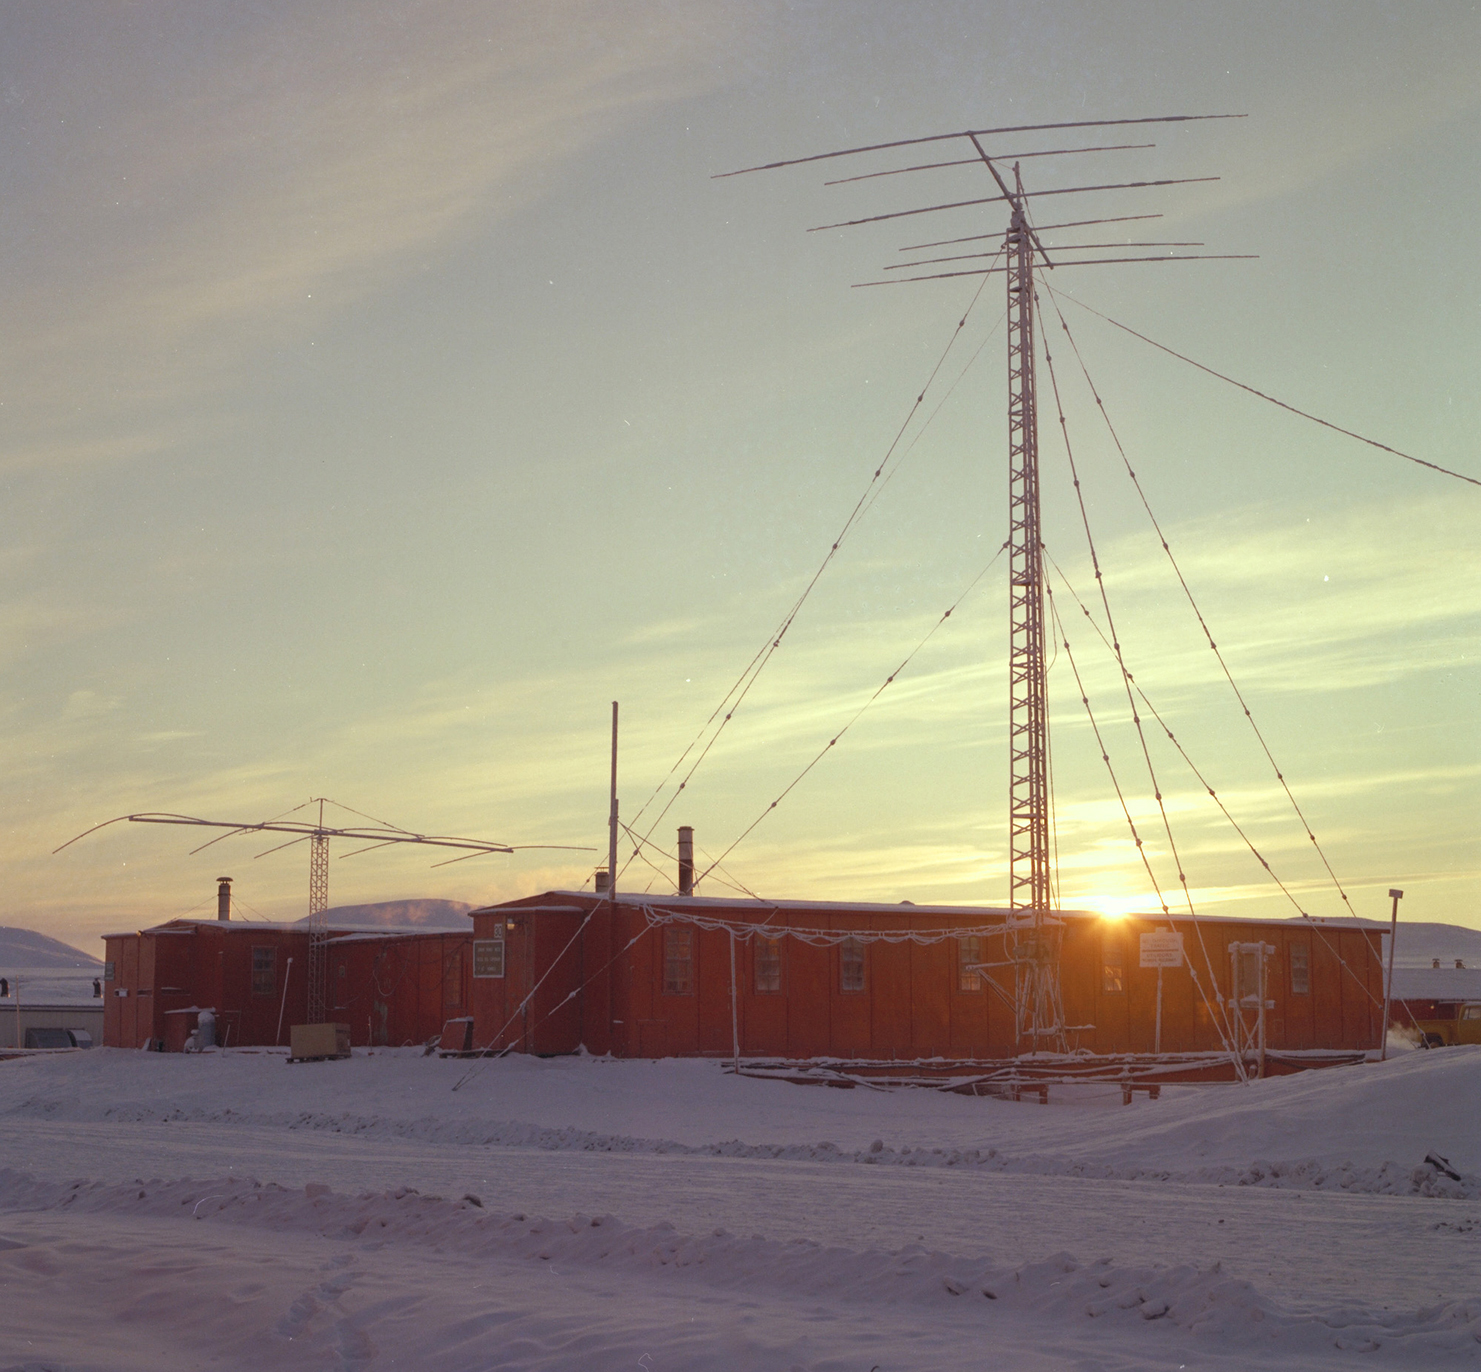 The sun goes down behind the new transmitter site at Canadian Forces Station Alert, Ellesmere Island, on October 9, 1976, leaving the world's northernmost permanent settlement heading into extended periods of darkness with no sunlight at all between mid-October and late February. PHOTO: DND